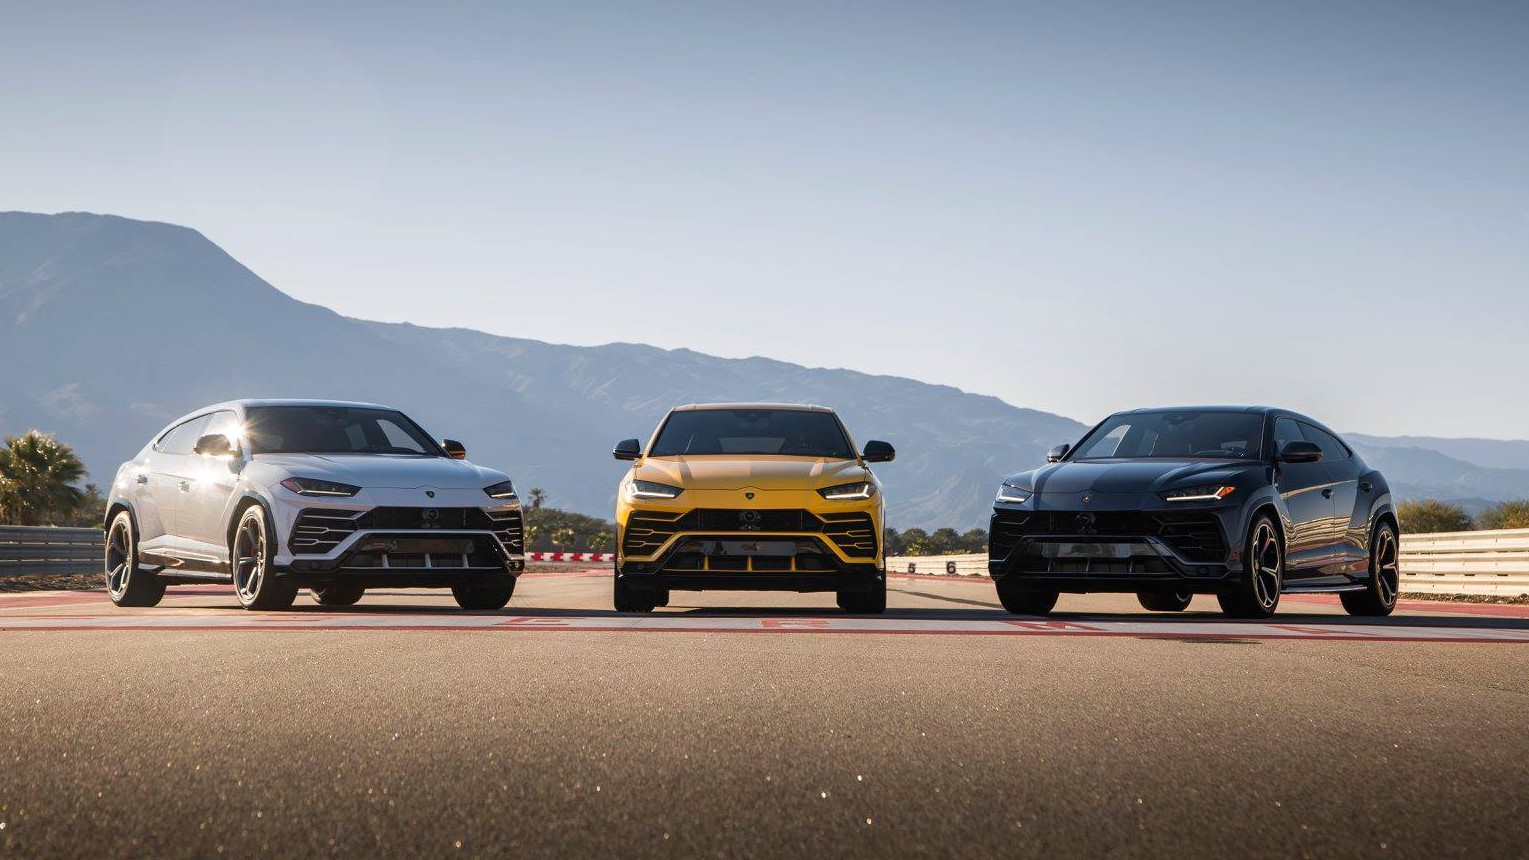 lamborghini-sold-1761-urus-suvs-last-year-set-a-new-record_1